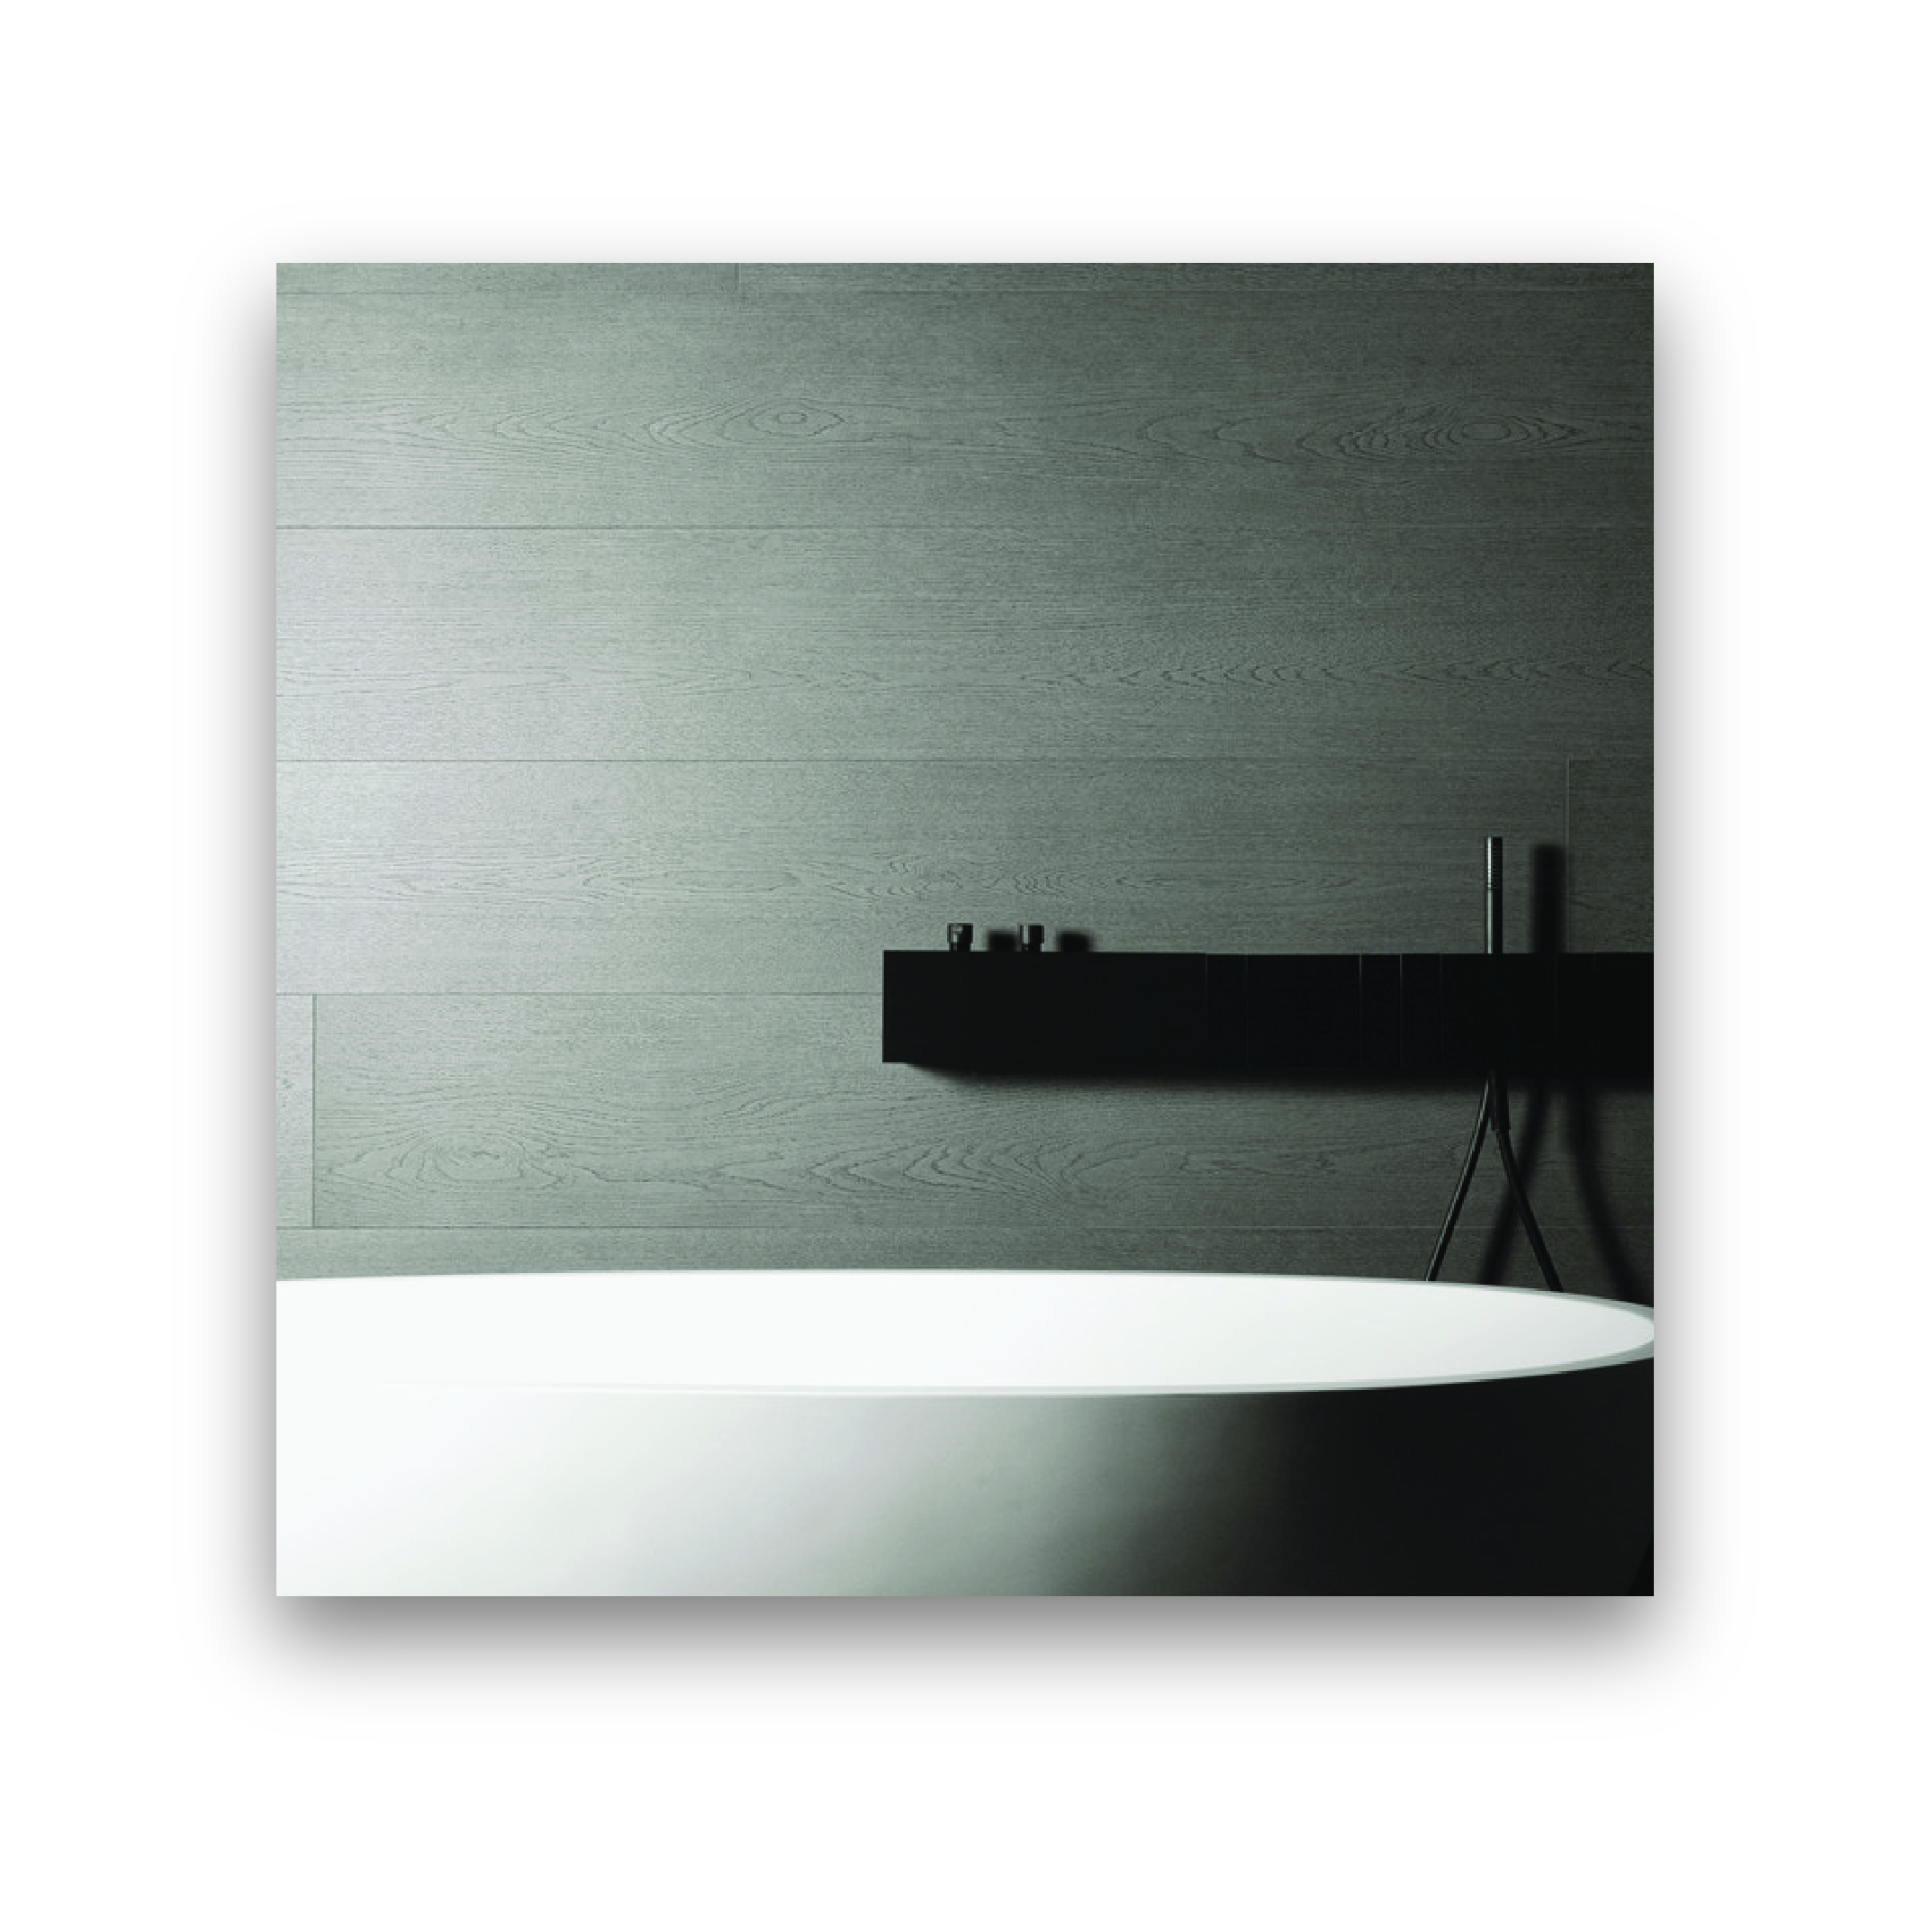 All Natural Stone Stock Material, All Natural Stone Stock Porcelain, Eos